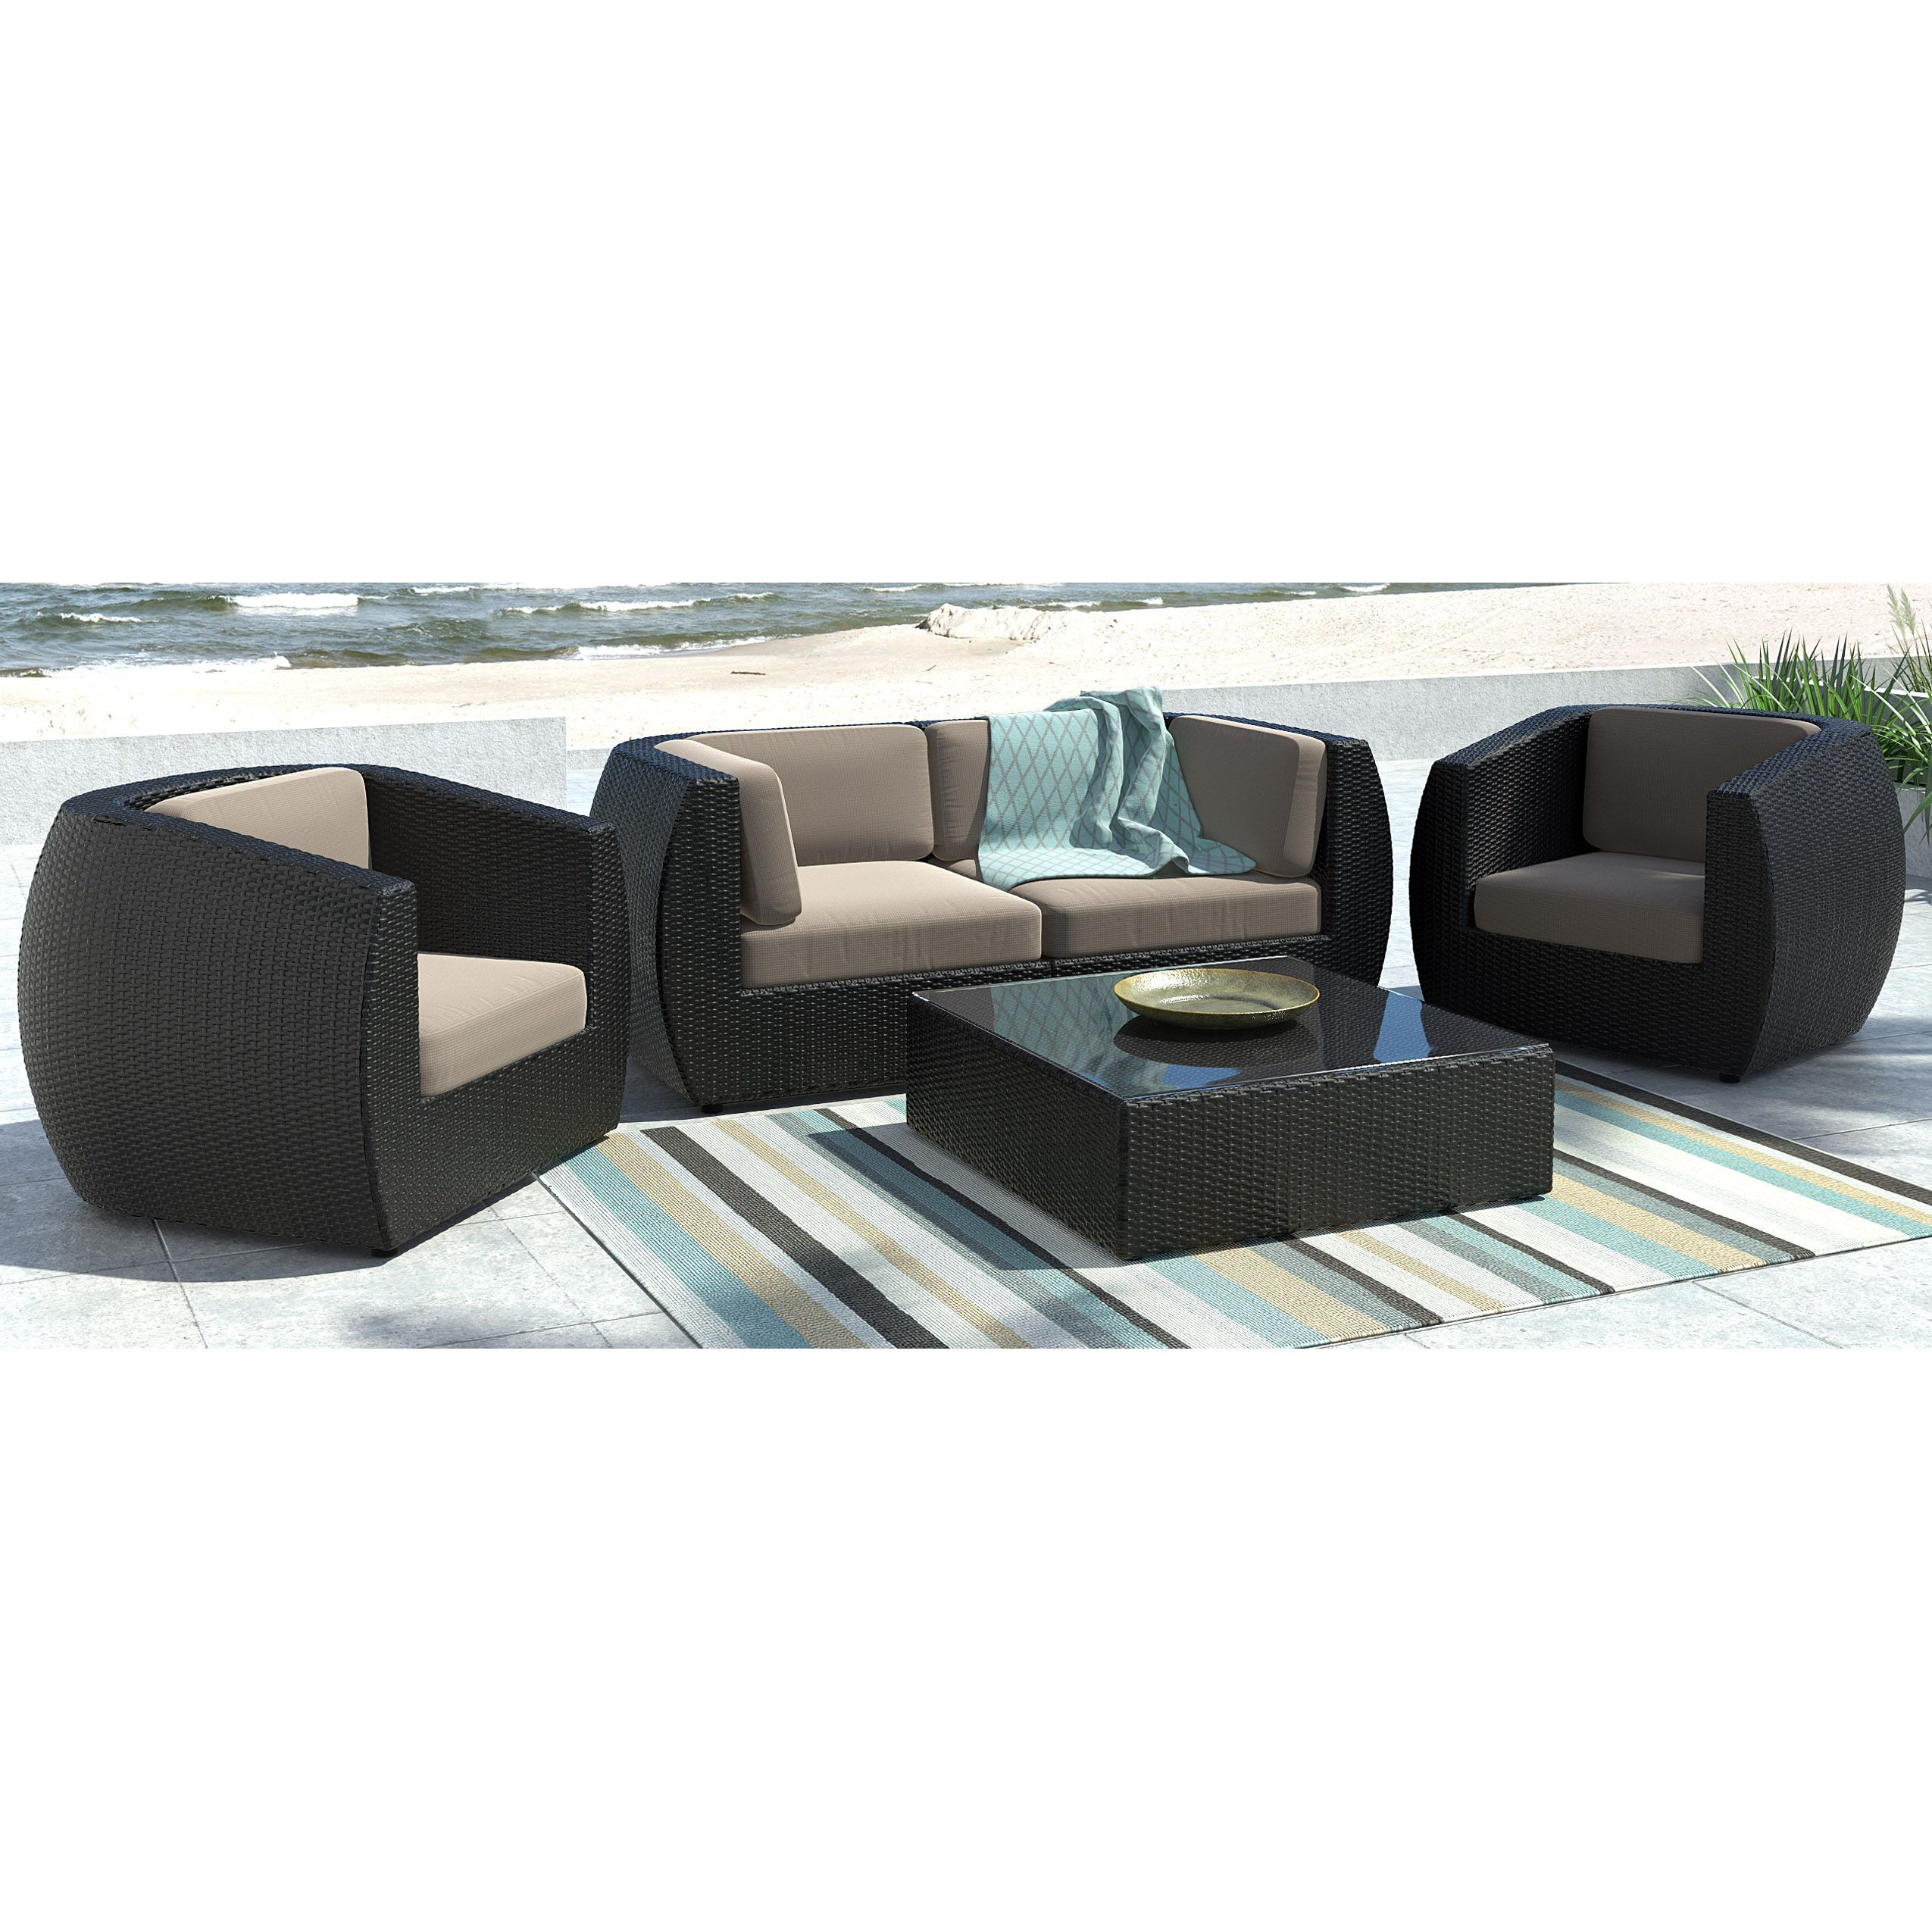 CorLiving Seattle Curved Sofa And Chair Patio Set